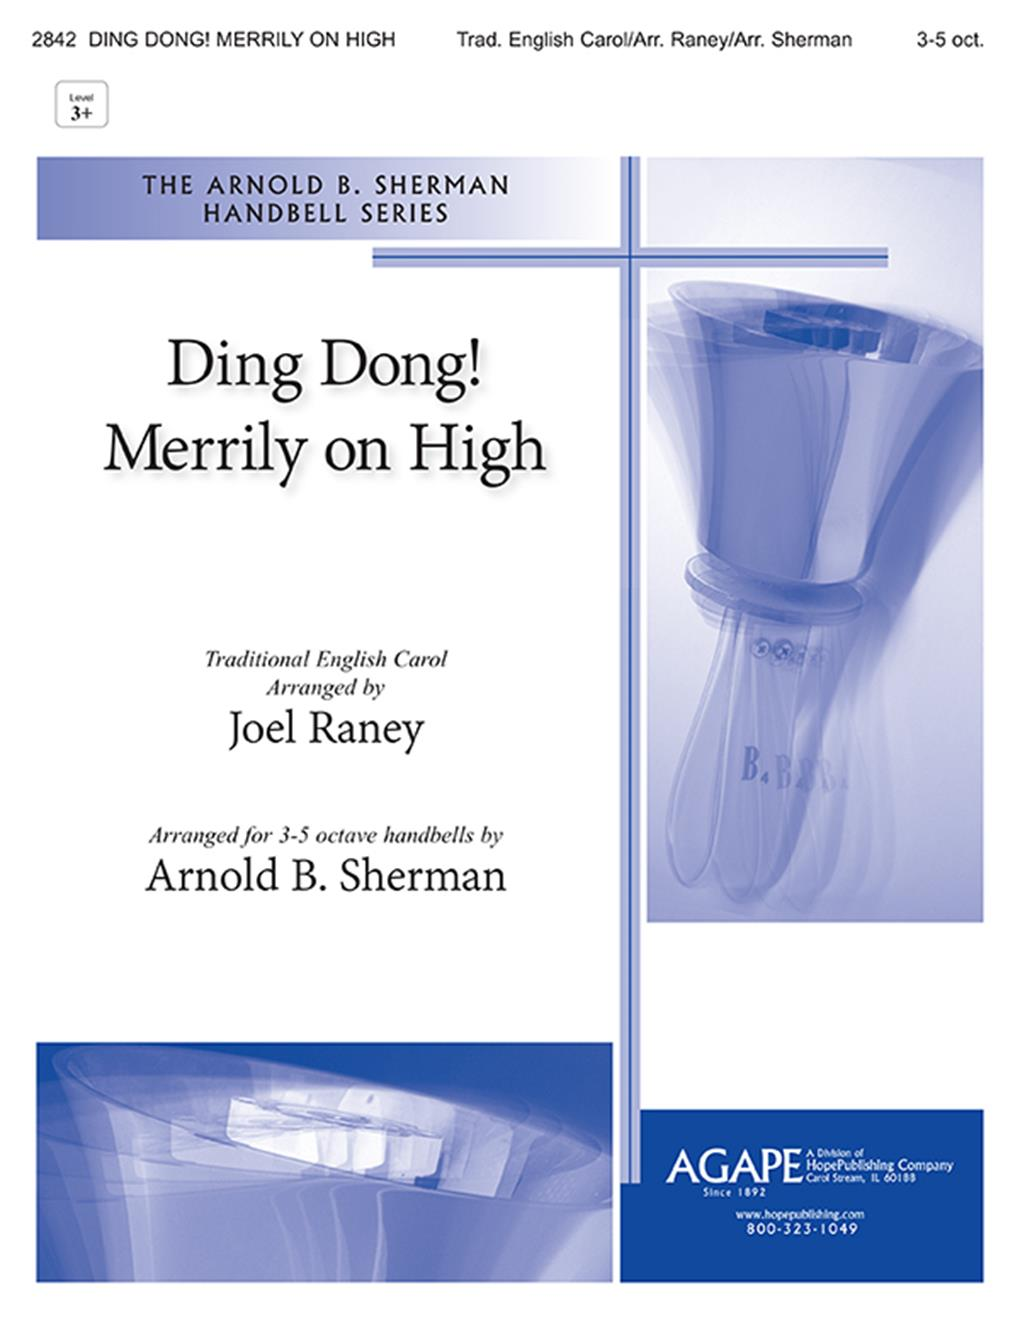 Ding Dong Merrily on High - 3-5 Oct. Cover Image